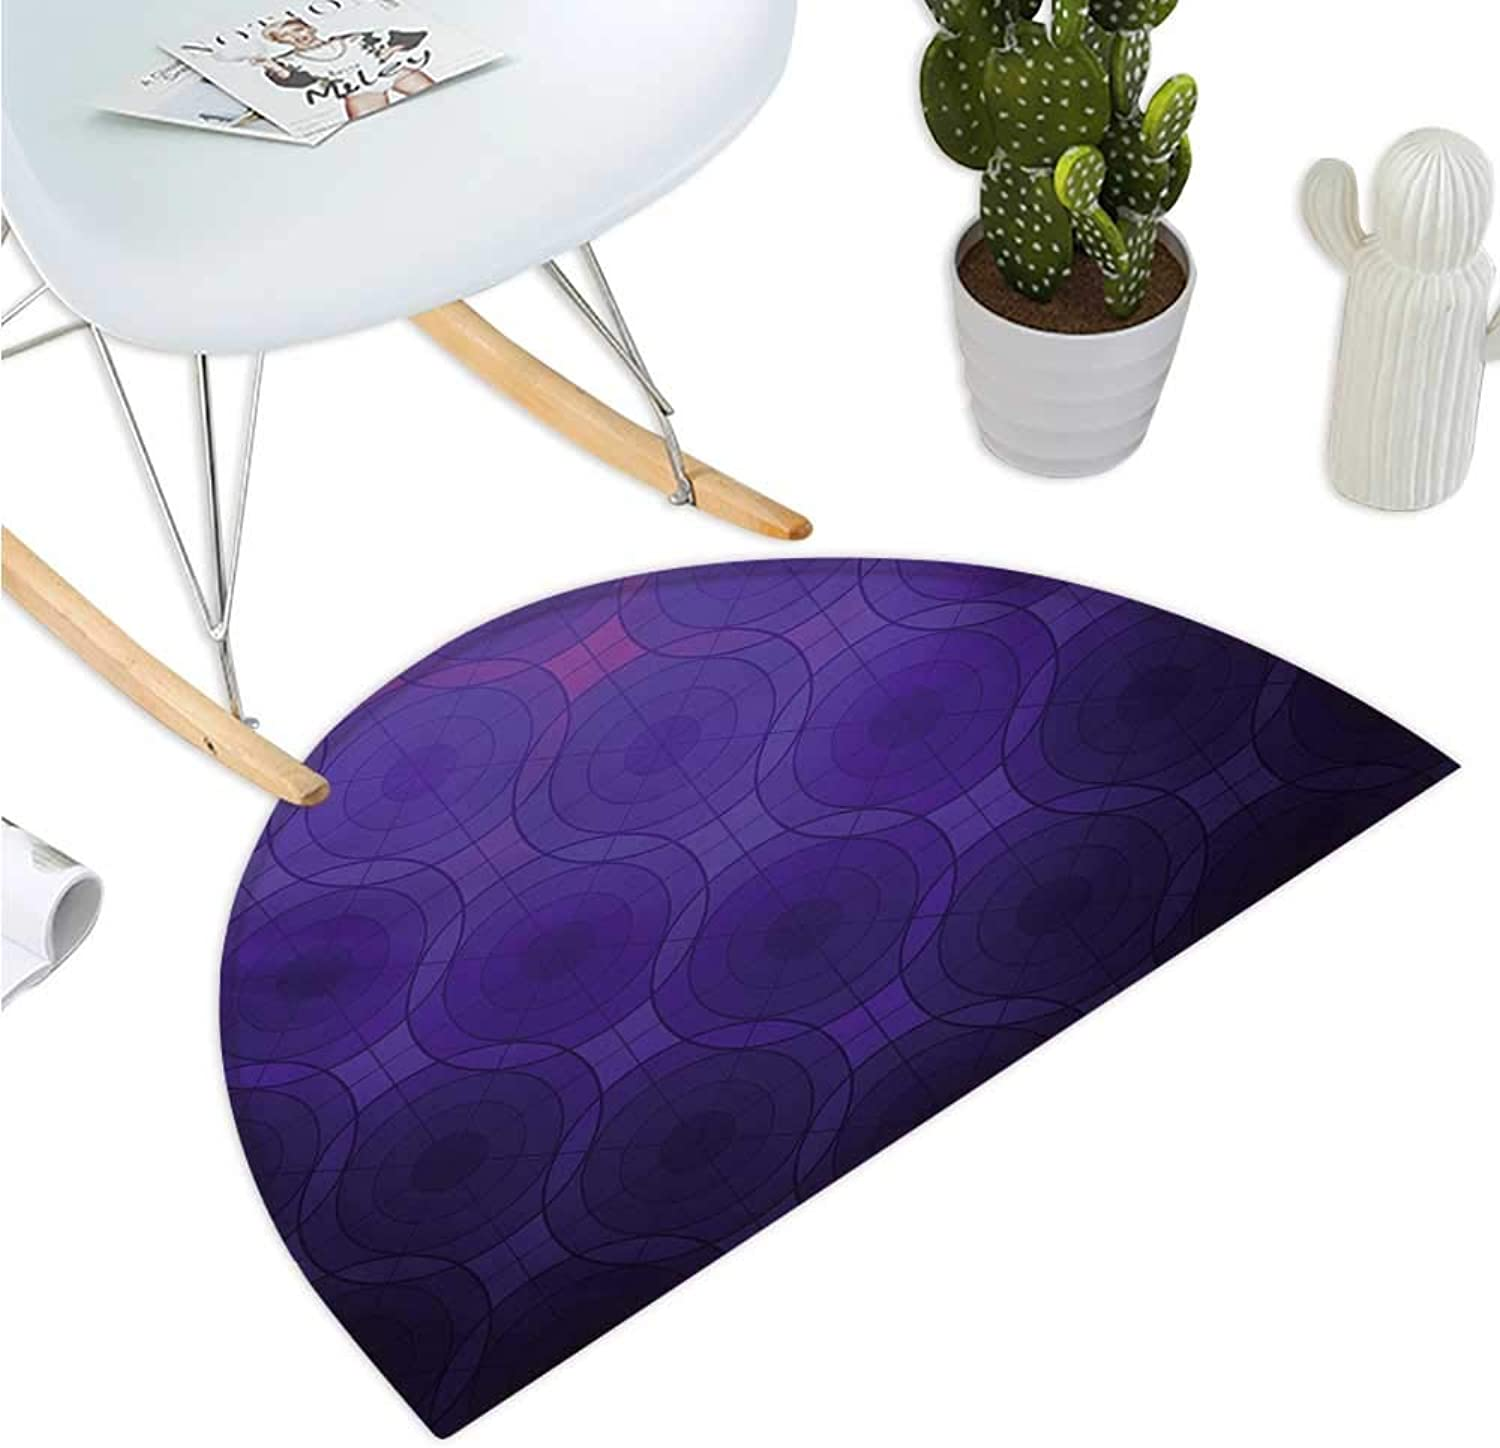 Indigo Half Round Door mats Geometric Circles Tile Like Detailed Image with Inner Details and Lines Entry Door Mat H 39.3  xD 59  Purple and Magenta bluee